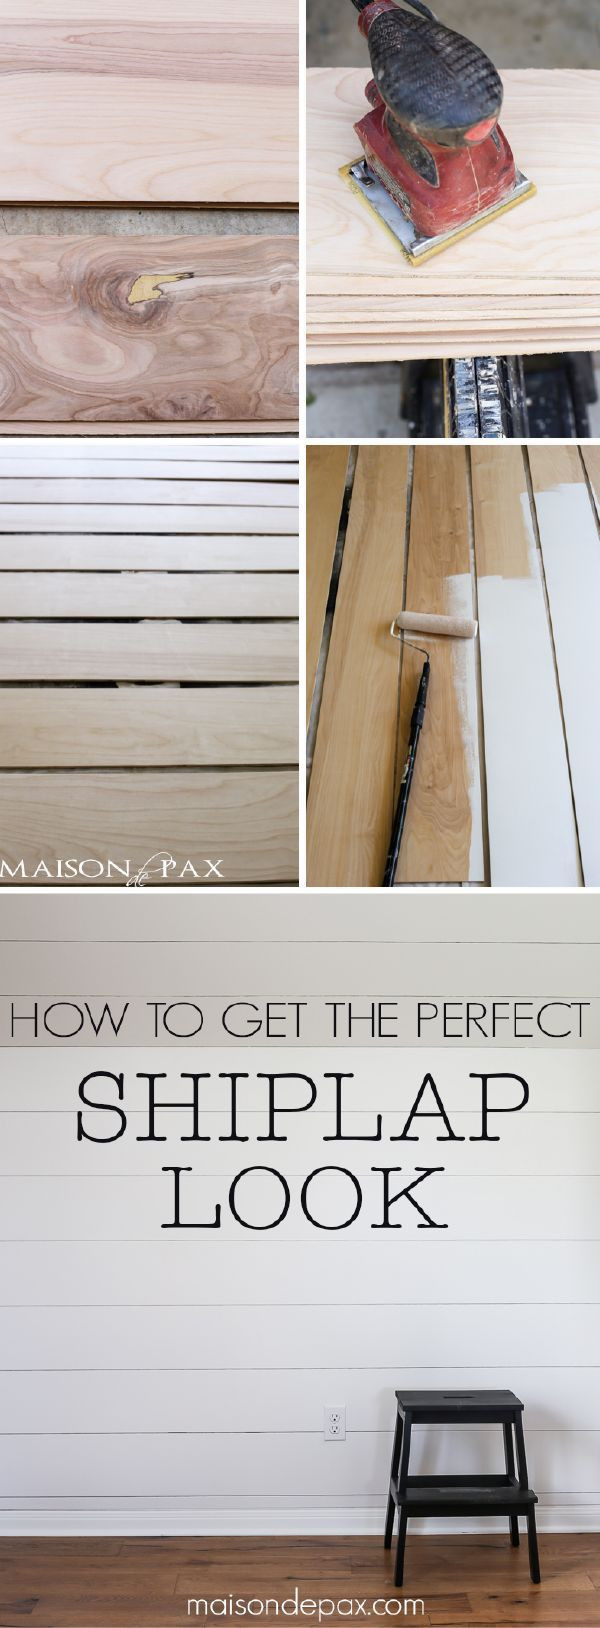 hardwood flooring nanaimo of 358 best remodel images on pinterest for the home living room and intended for how to plank a wall diy shiplap